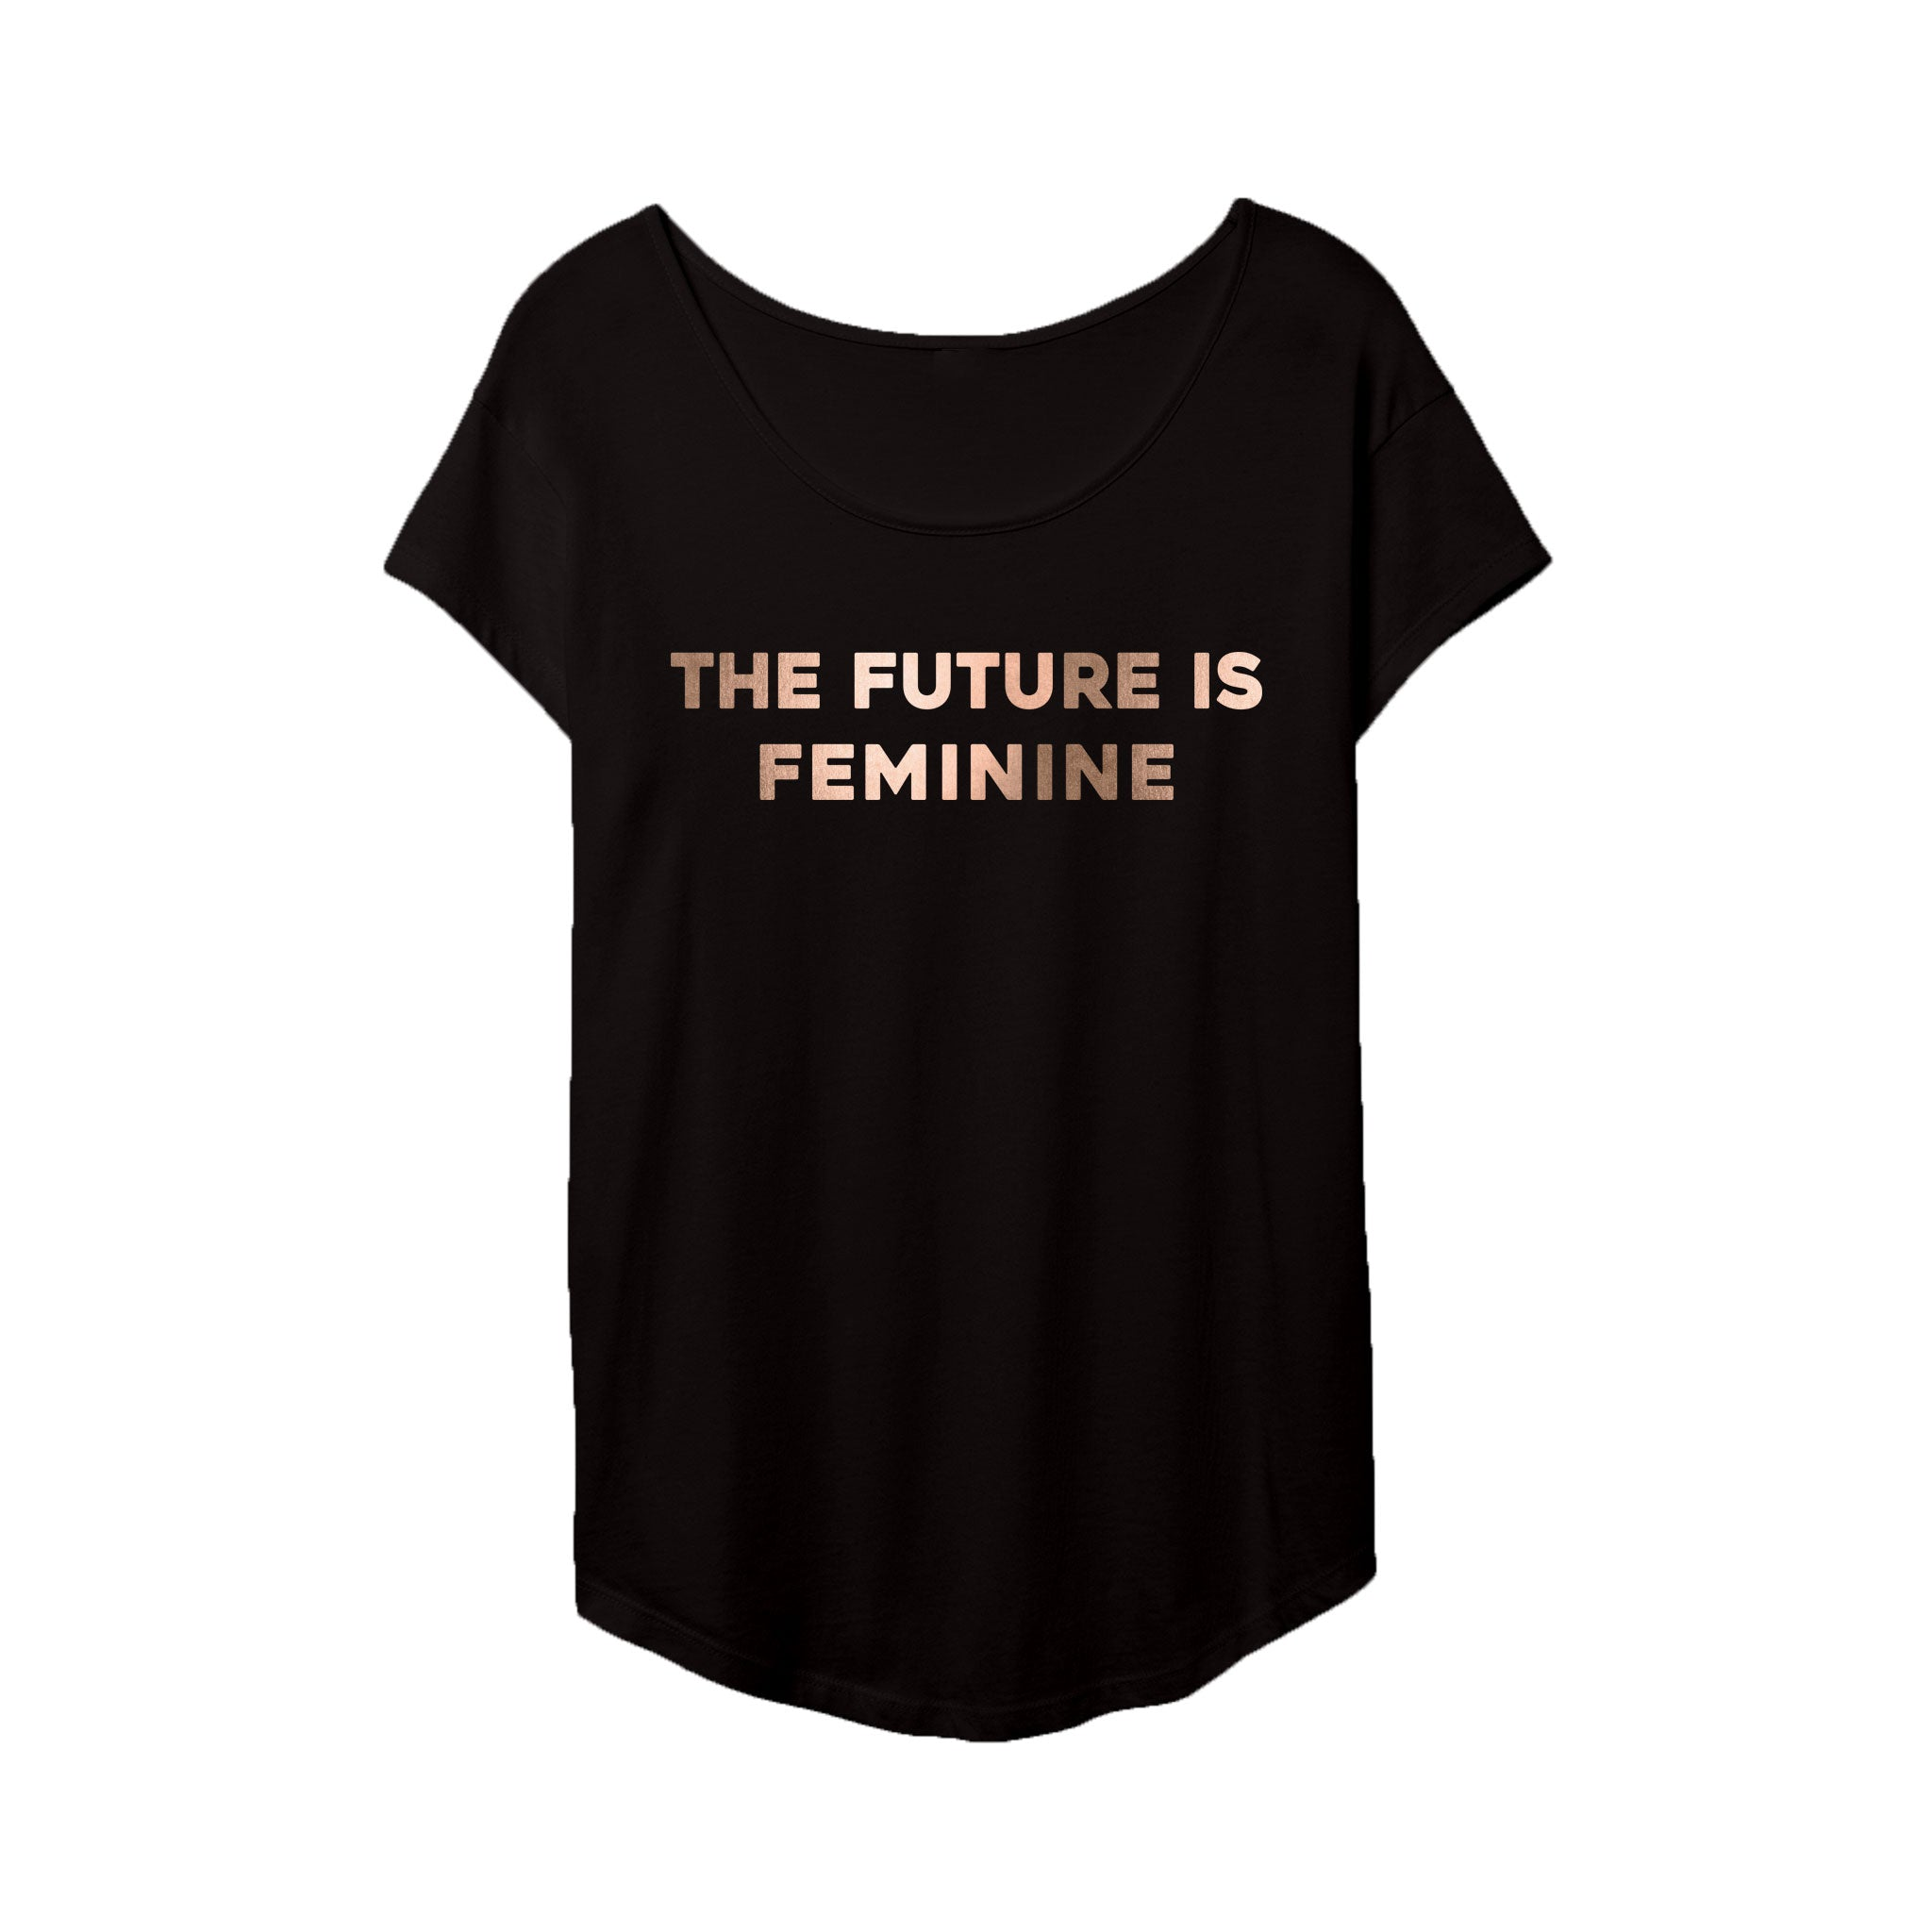 The Future Is Feminine